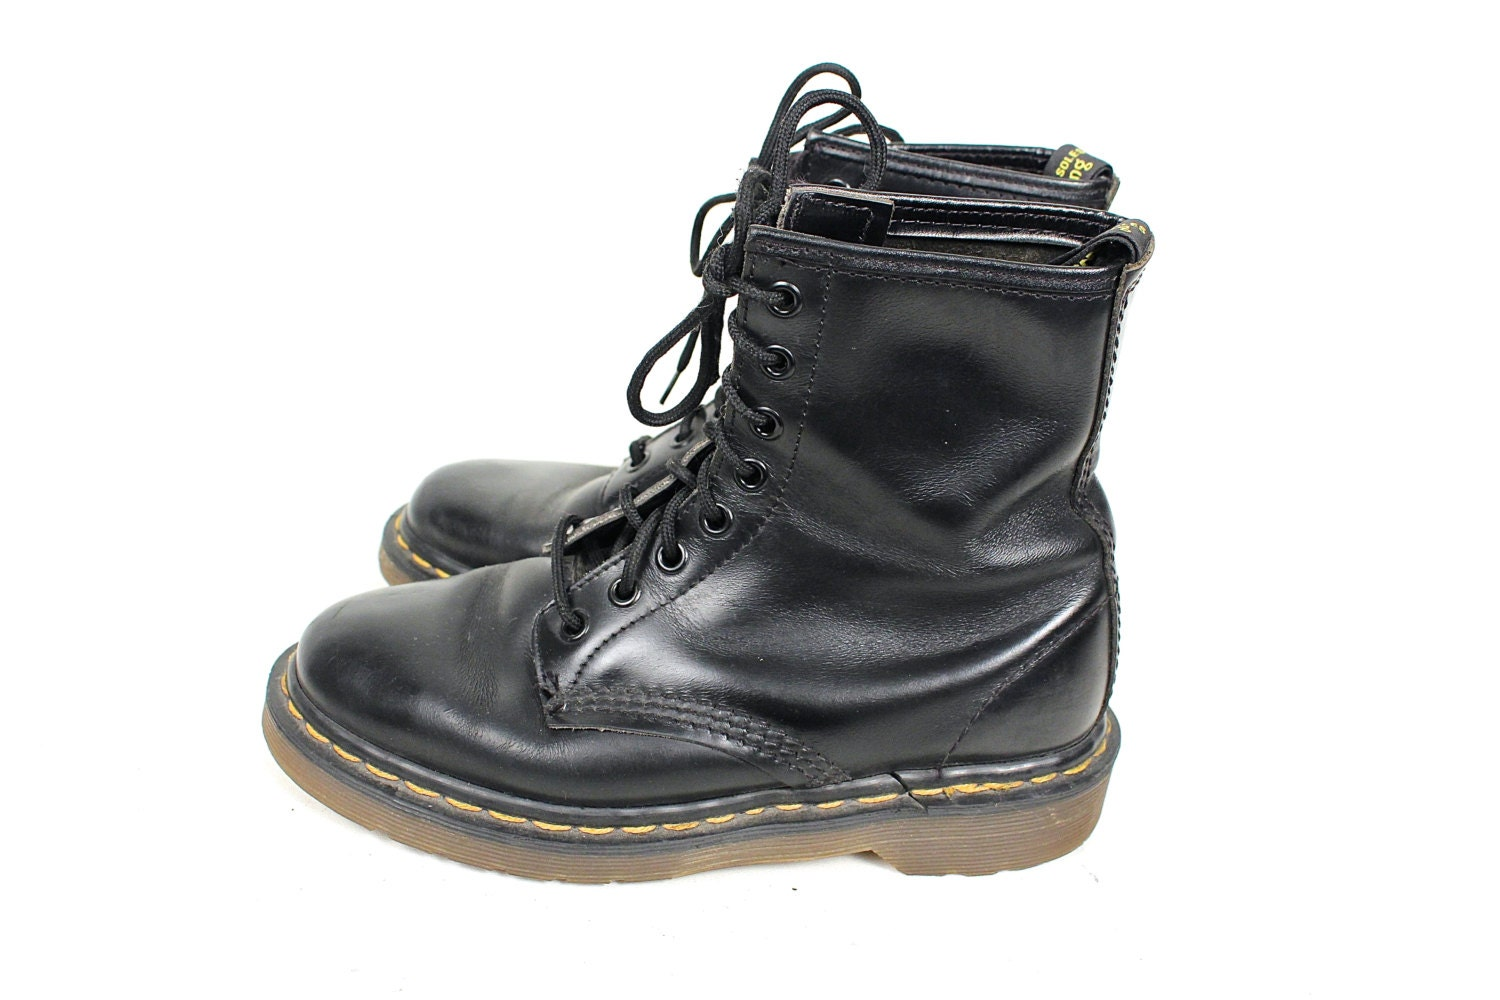 jahrgang doc marten schwarz leder boot 90er jahre grunge. Black Bedroom Furniture Sets. Home Design Ideas